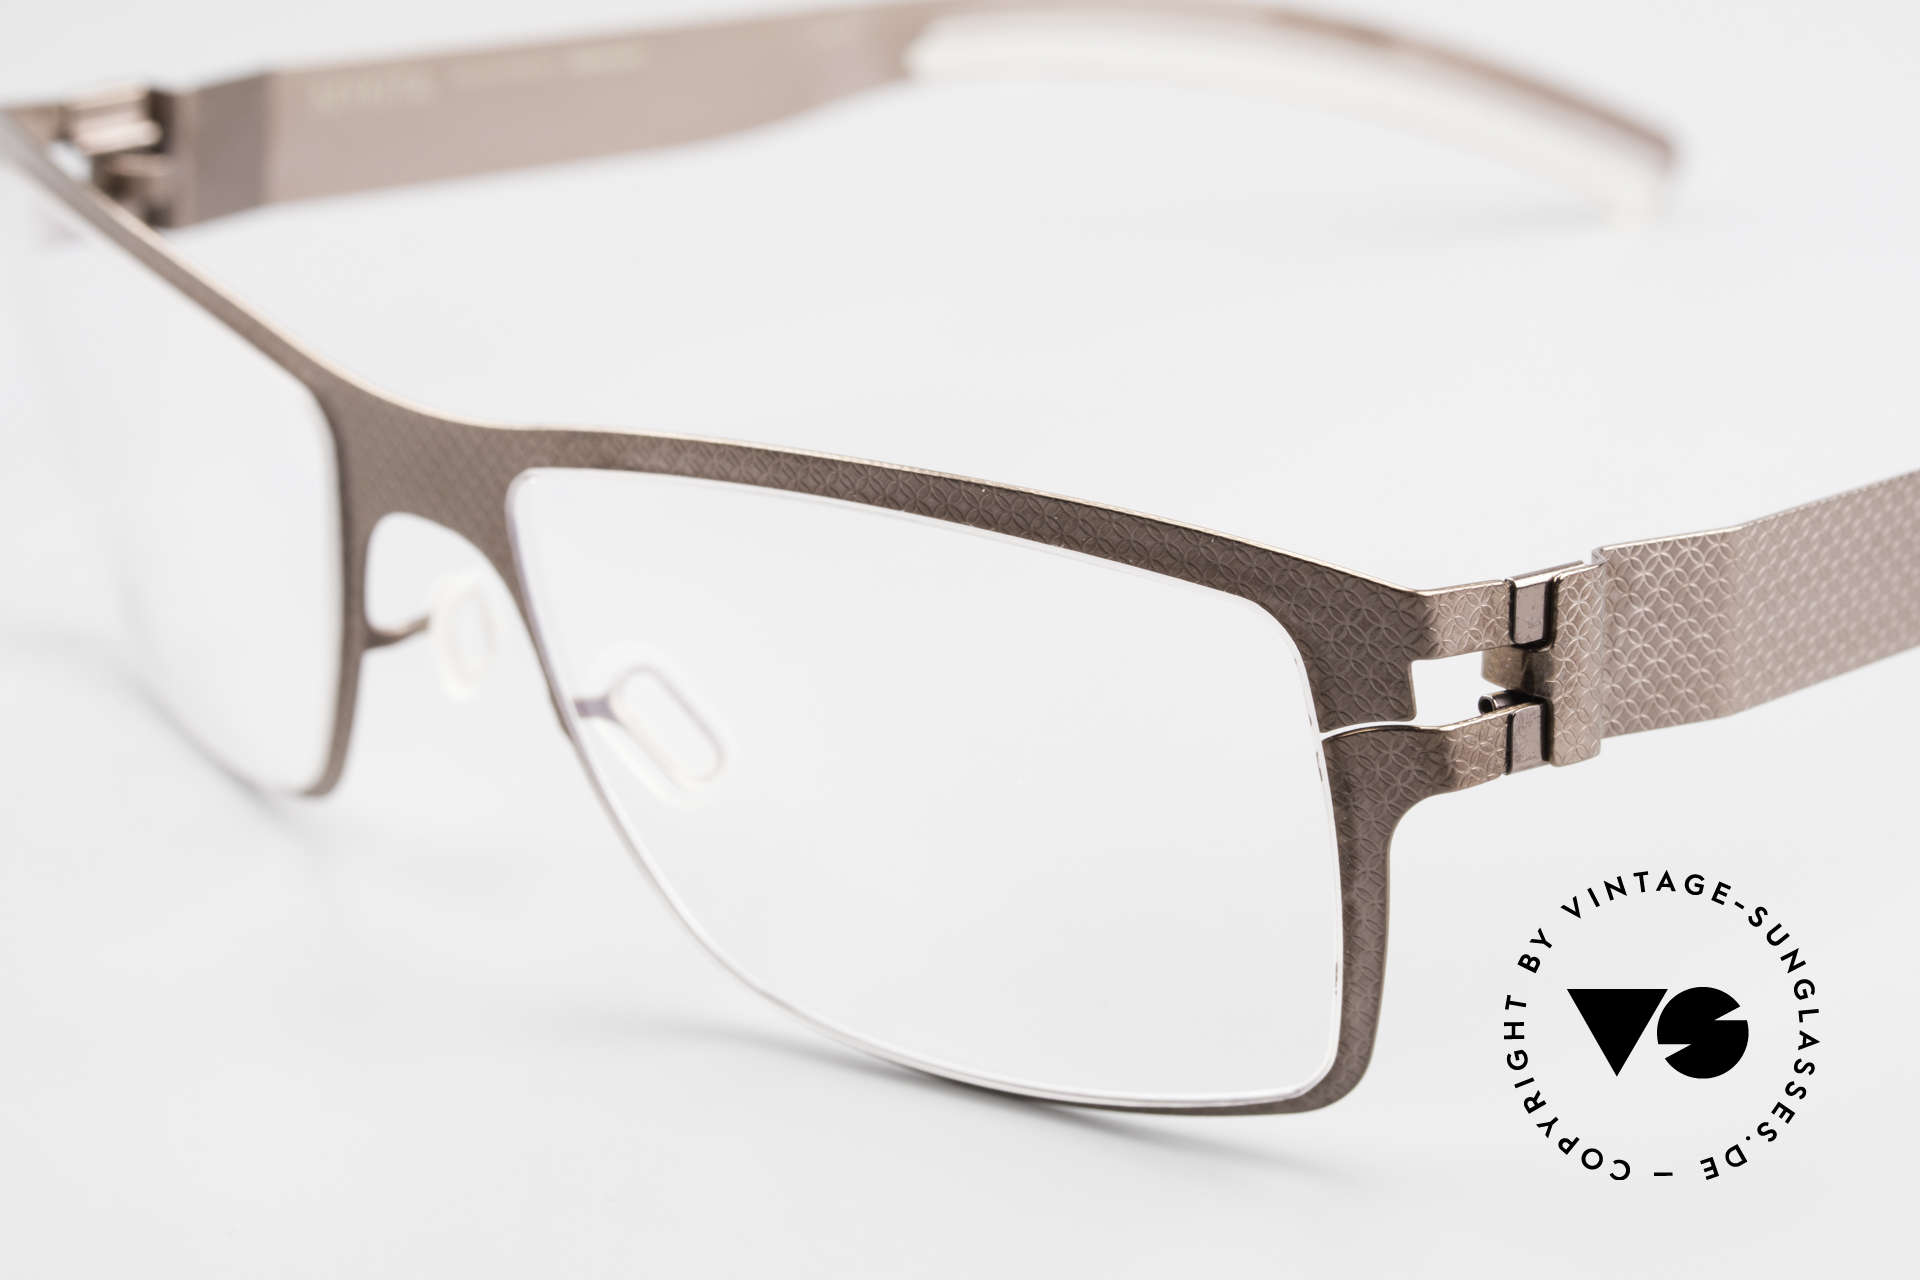 Mykita Bernhard Mykita Vintage Eyeglasses 2009, innovative and flexible metal frame = One size fits all!, Made for Men